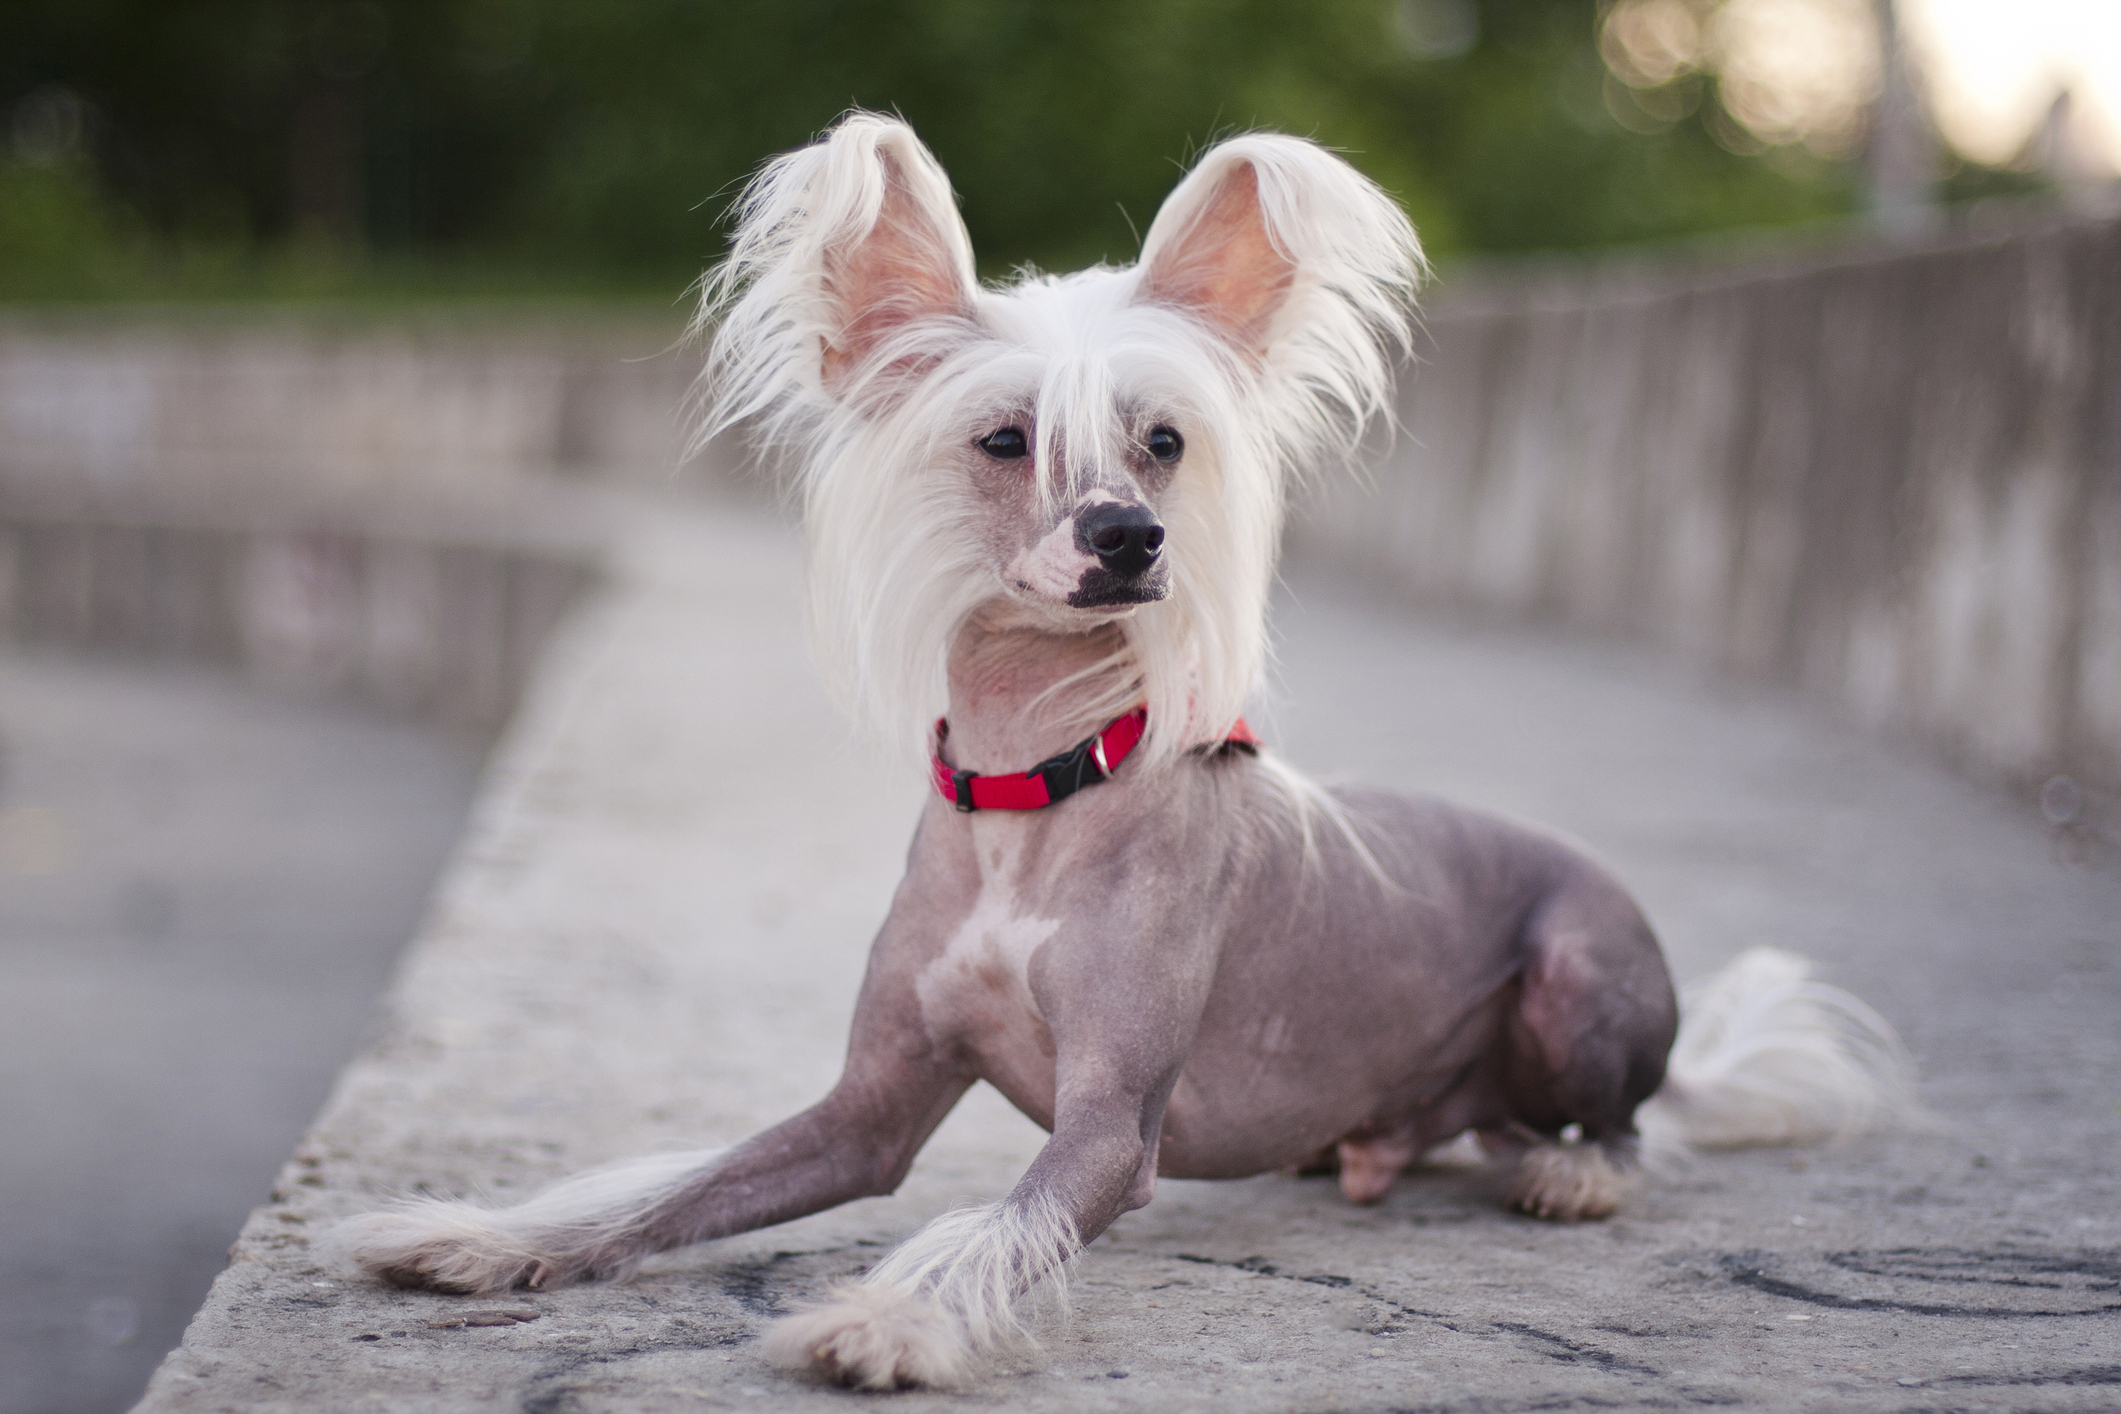 20 Dog Breeds That Don't Need a Lot of Exercise